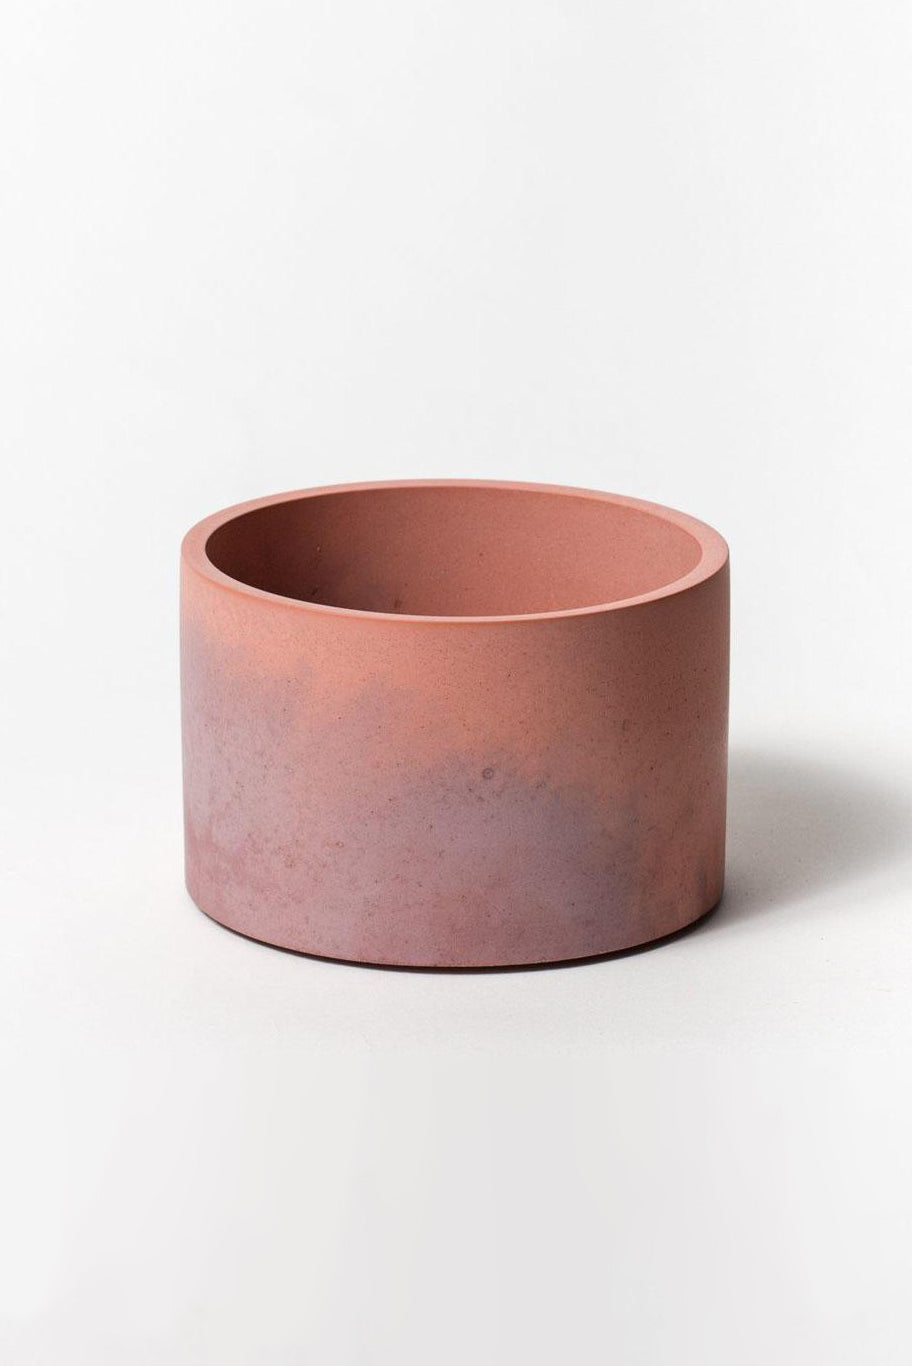 PRETTI.COOL Vessel in Mauve & Coral